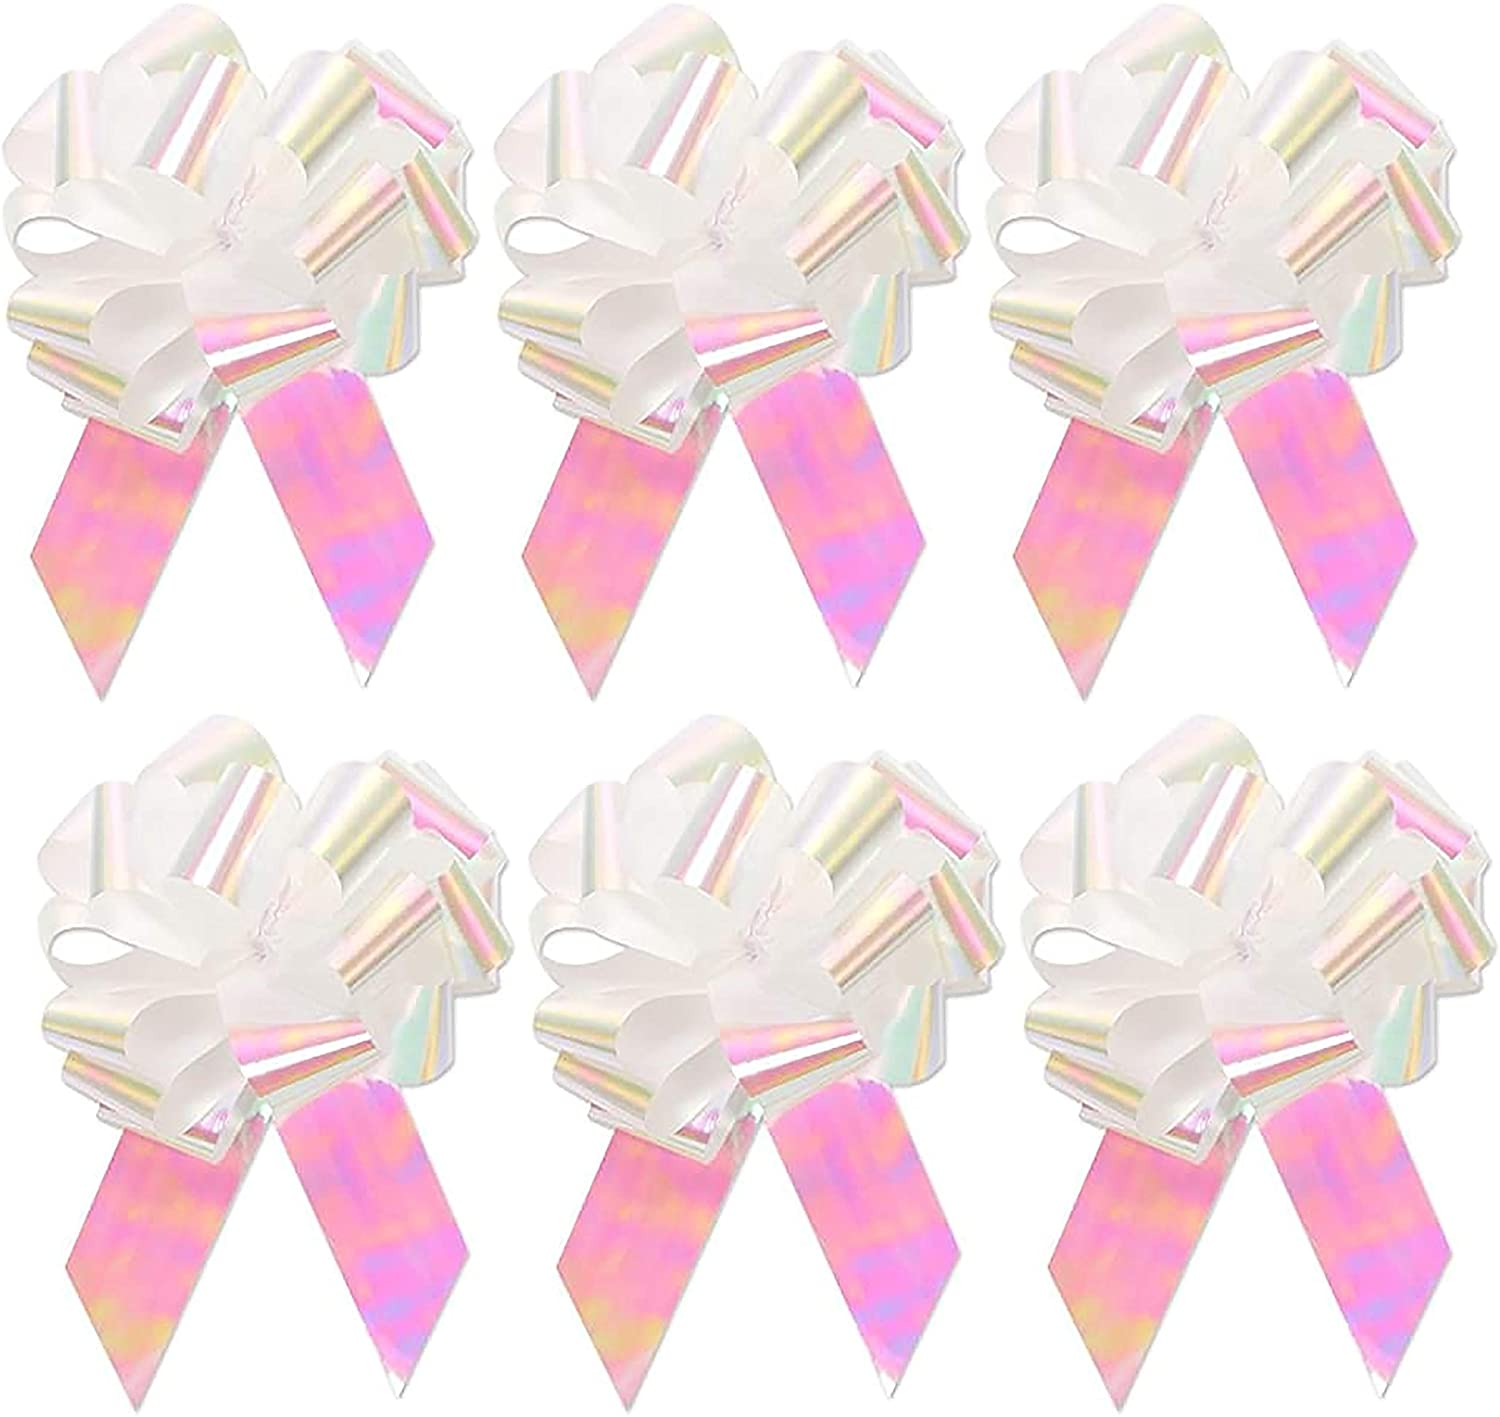 Large Metallic White Holographic Iridescent Gift Wrap Pull Bows - 5